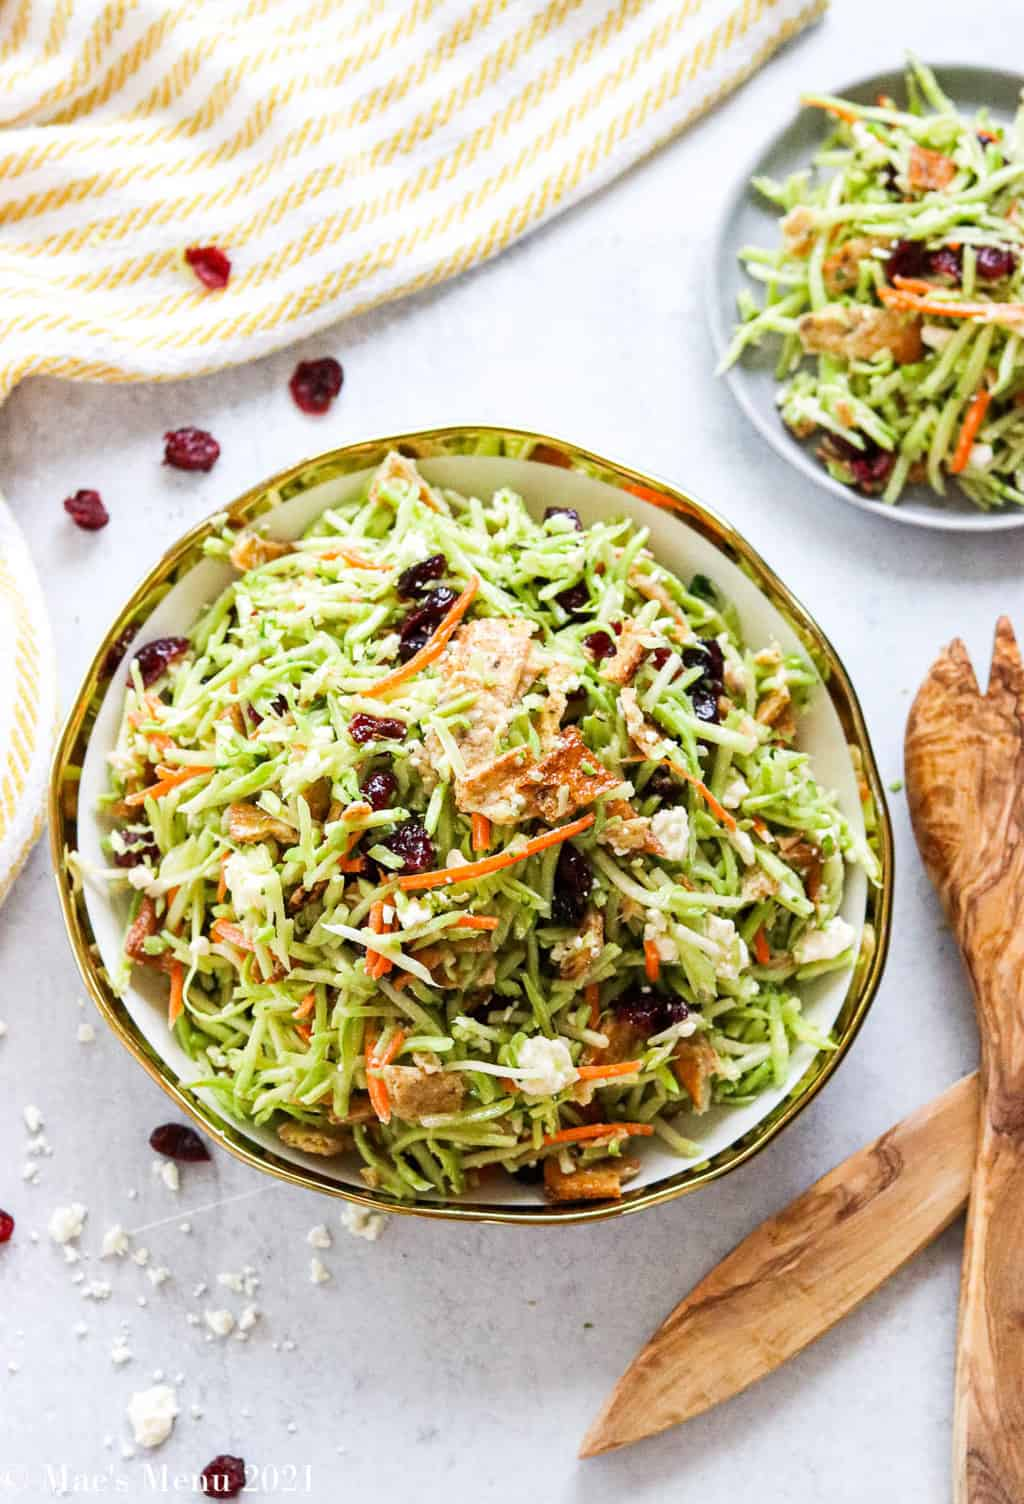 A bowl of broccoli slaw next to a small serving plate of it